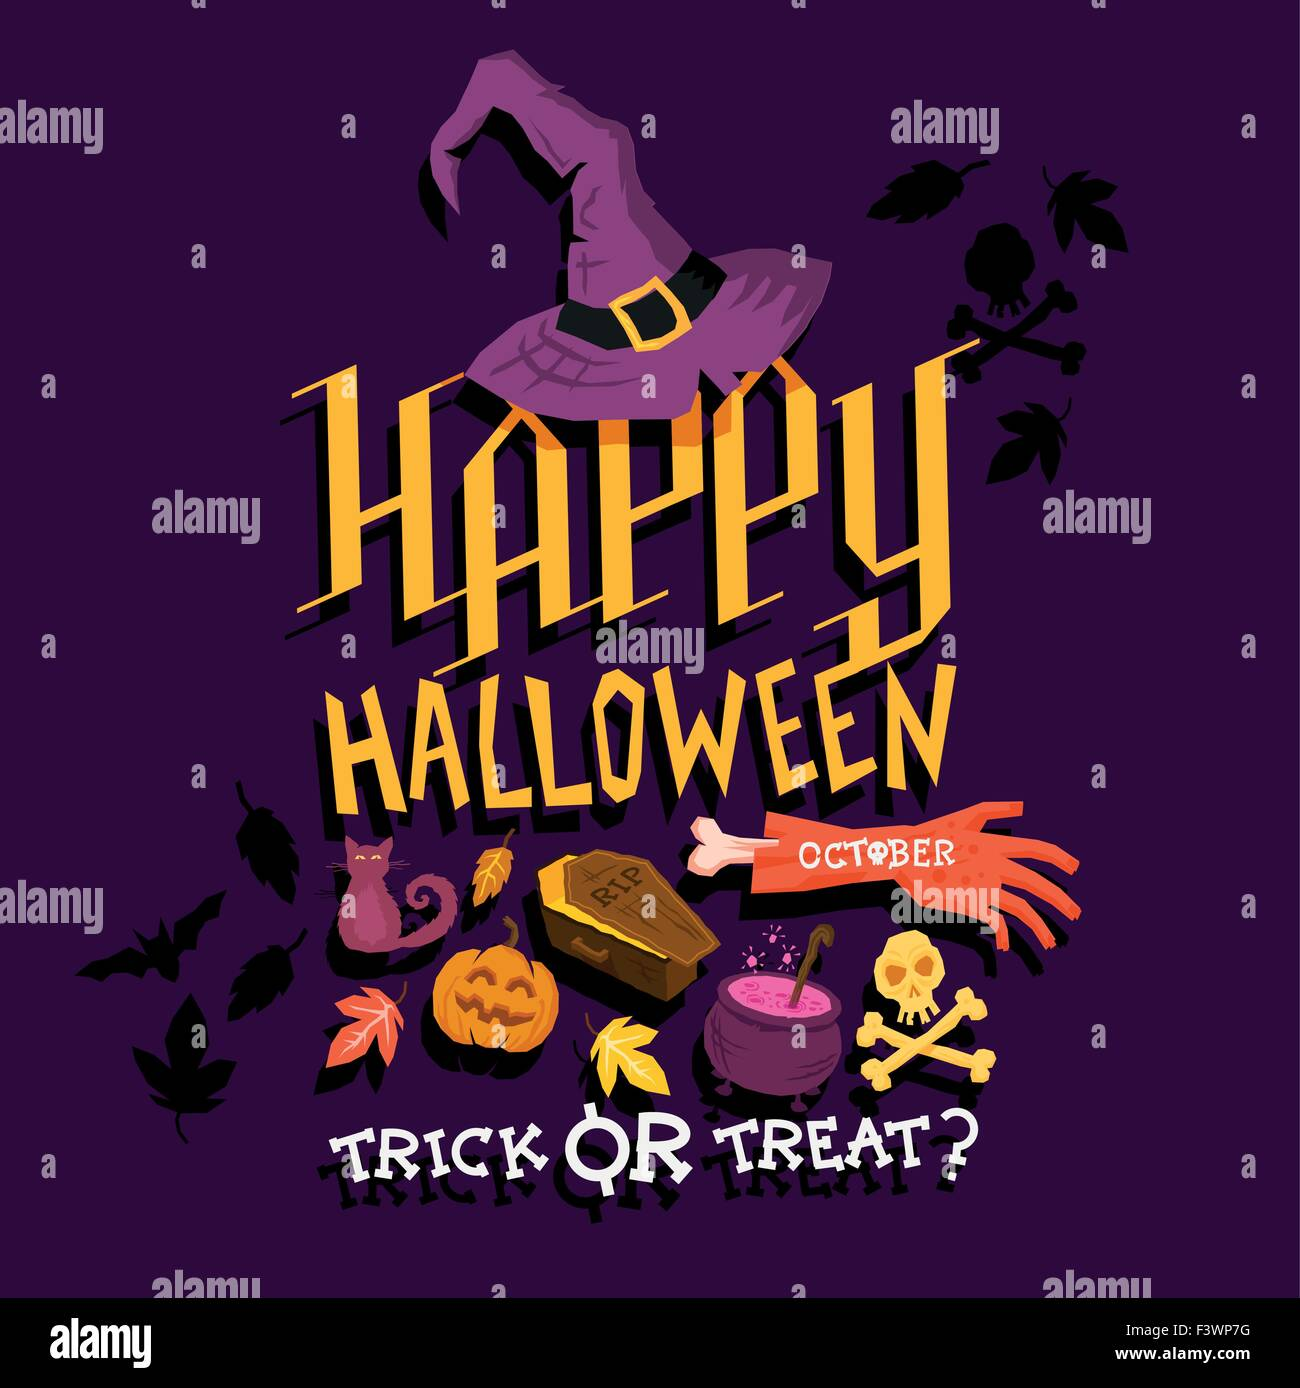 Gruselige Halloween Party Design Plakat. Fröhliches Halloween! Vektor-illustration Stockbild